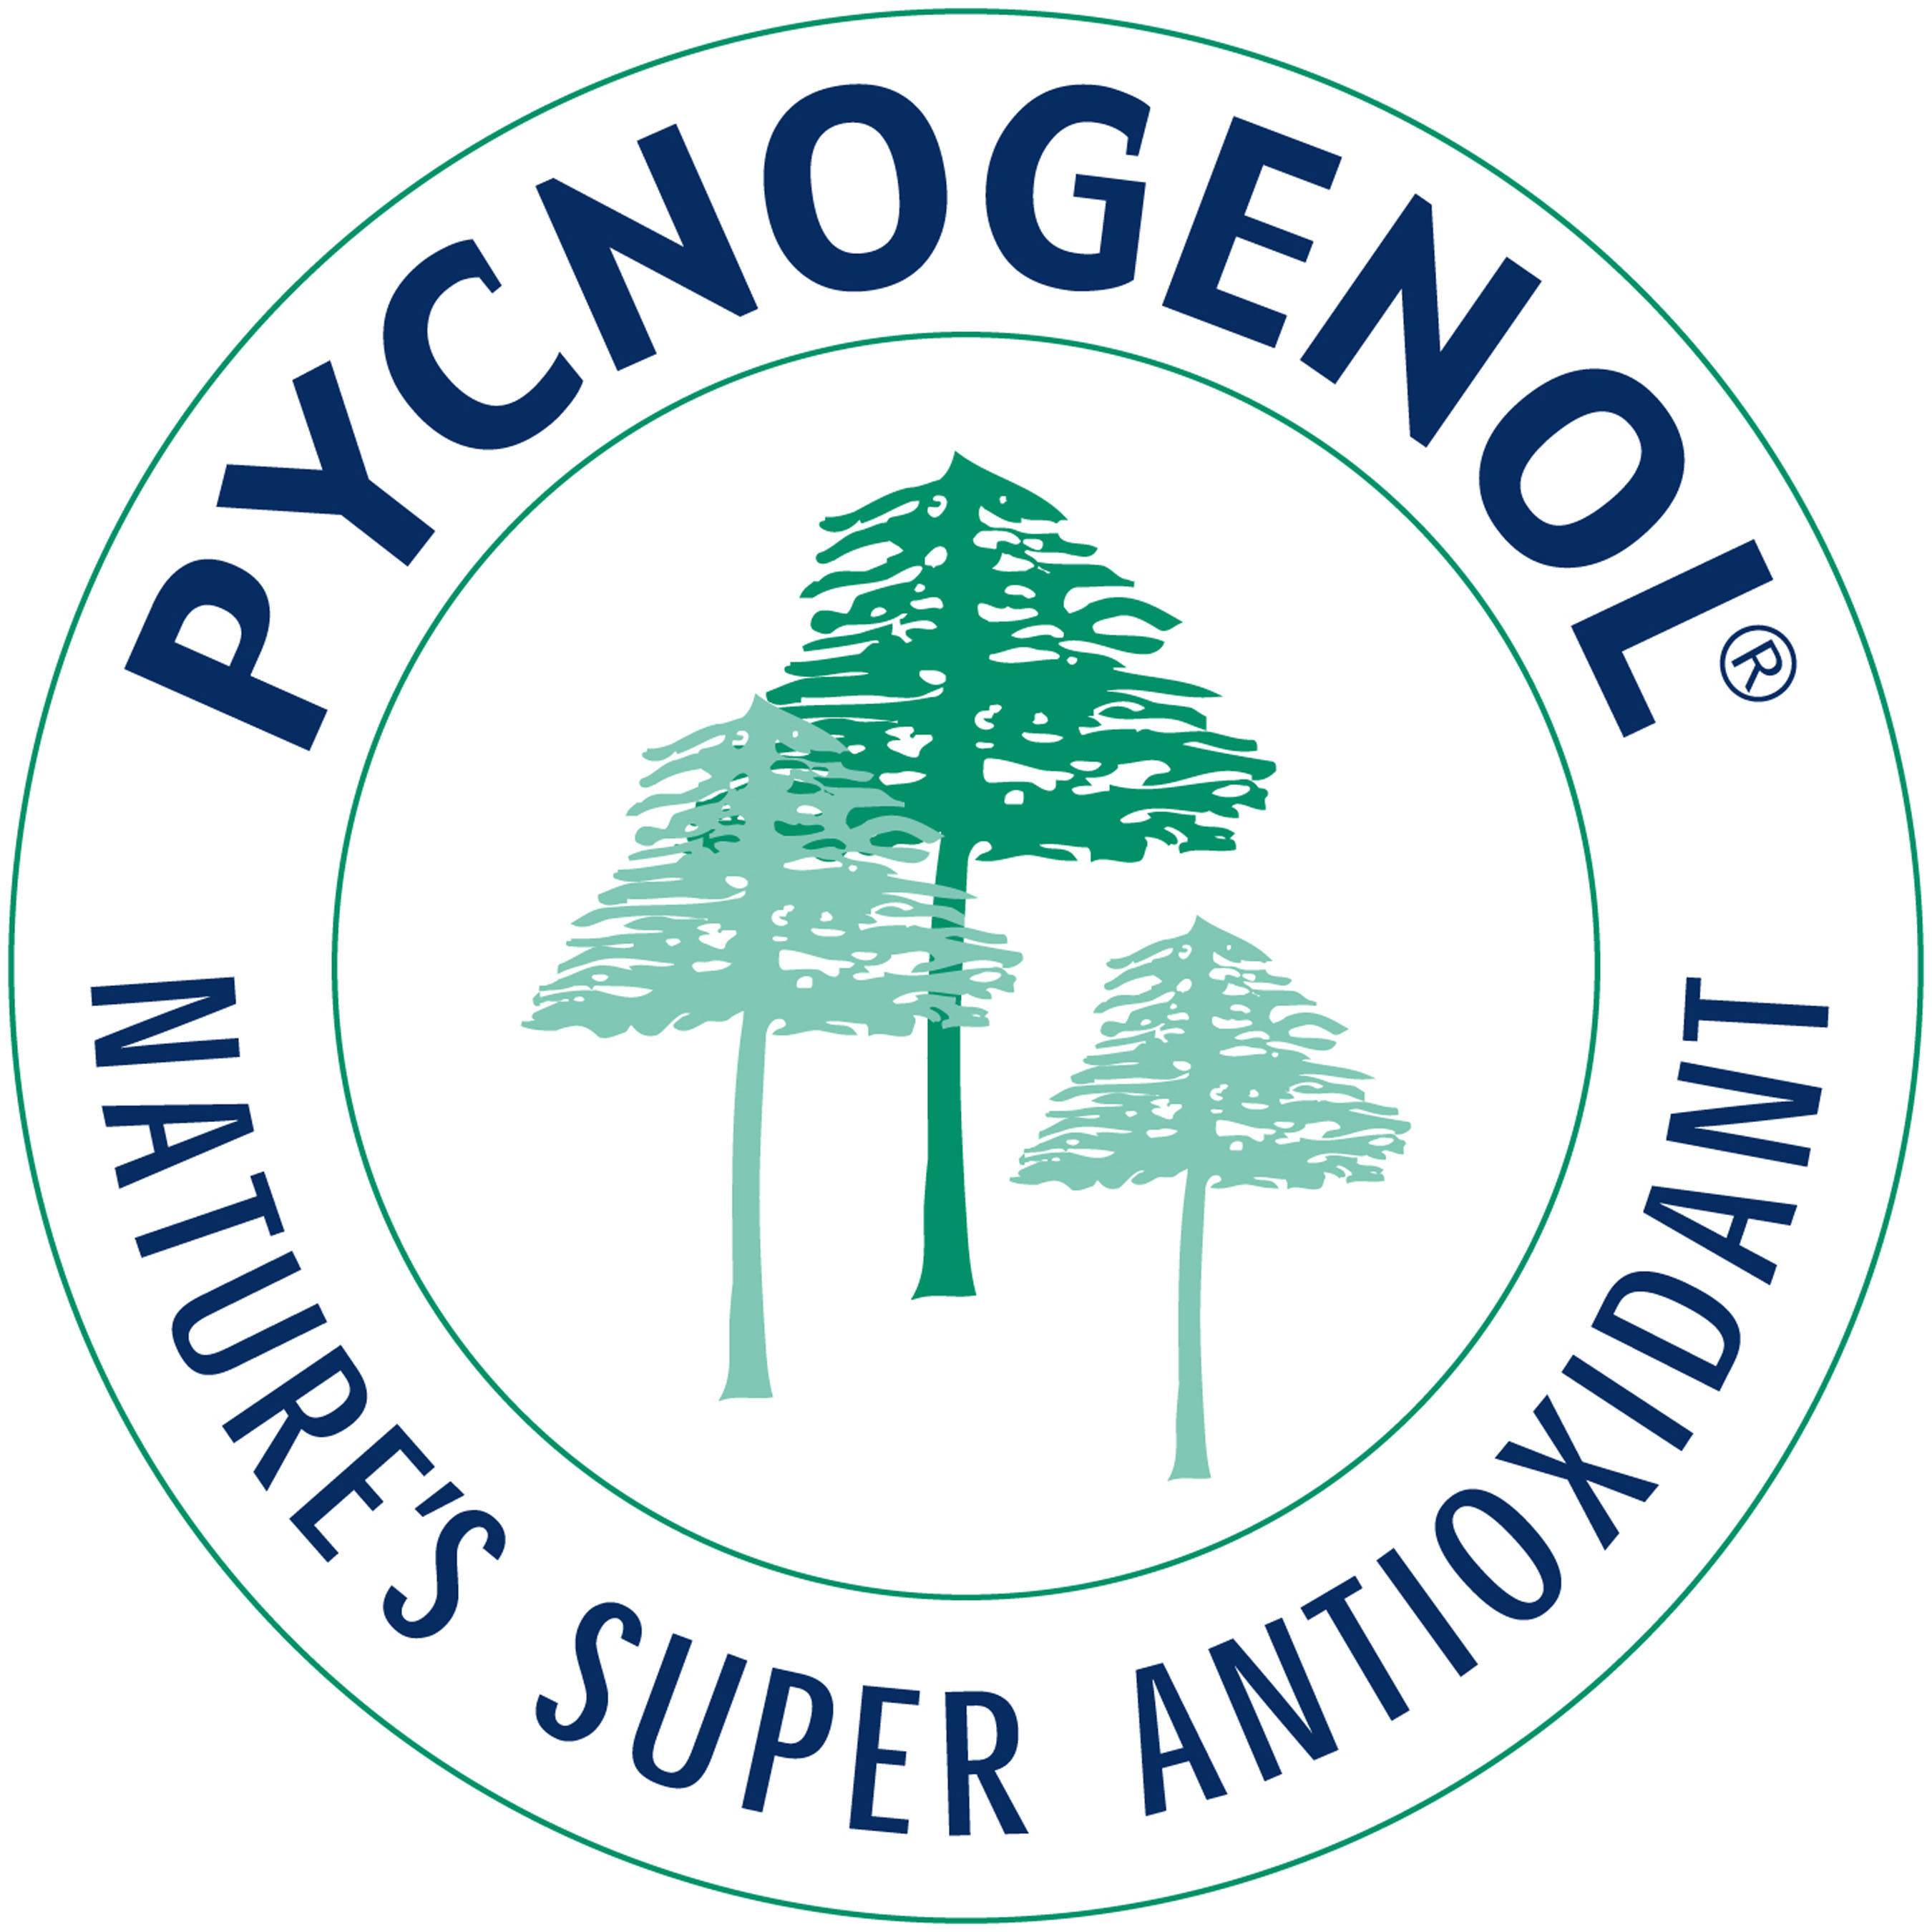 Pycnogenol(R) is a natural plant extract originating from the bark of the maritime pine that grows along the ...